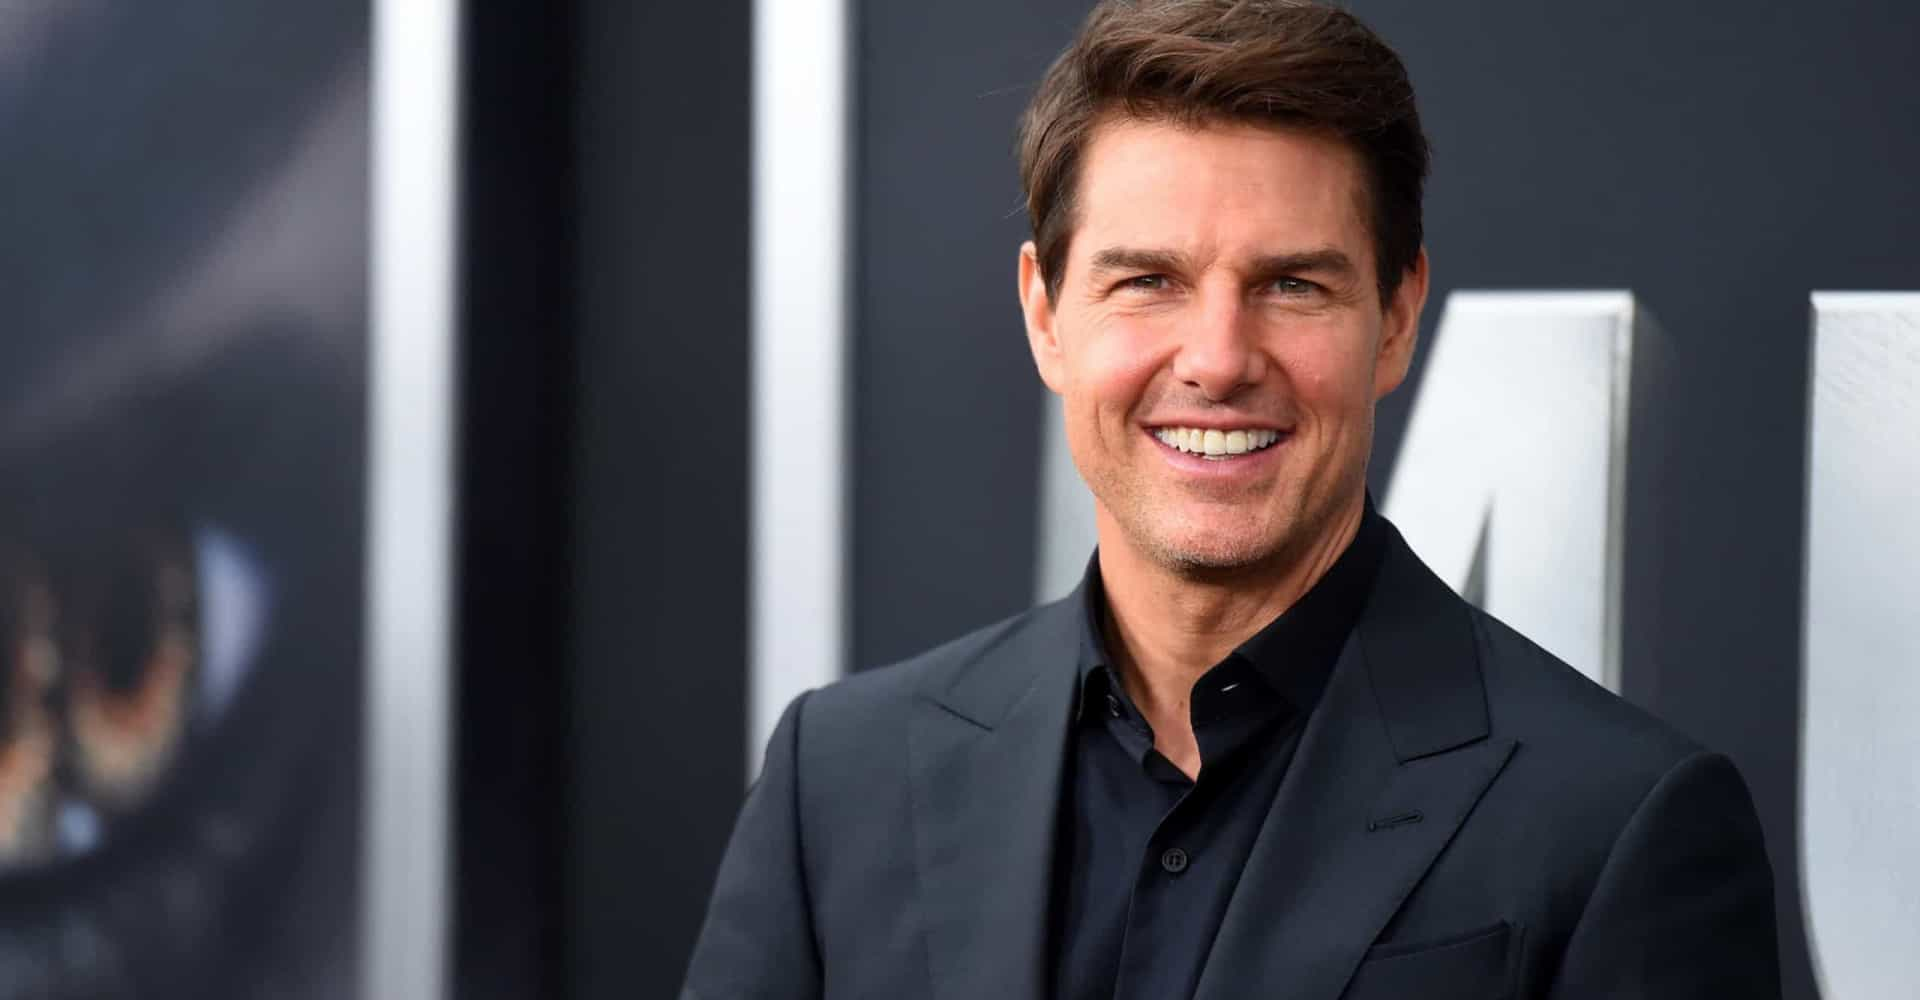 Tom Cruise: a look at his career, marriages and other curious facts about the star